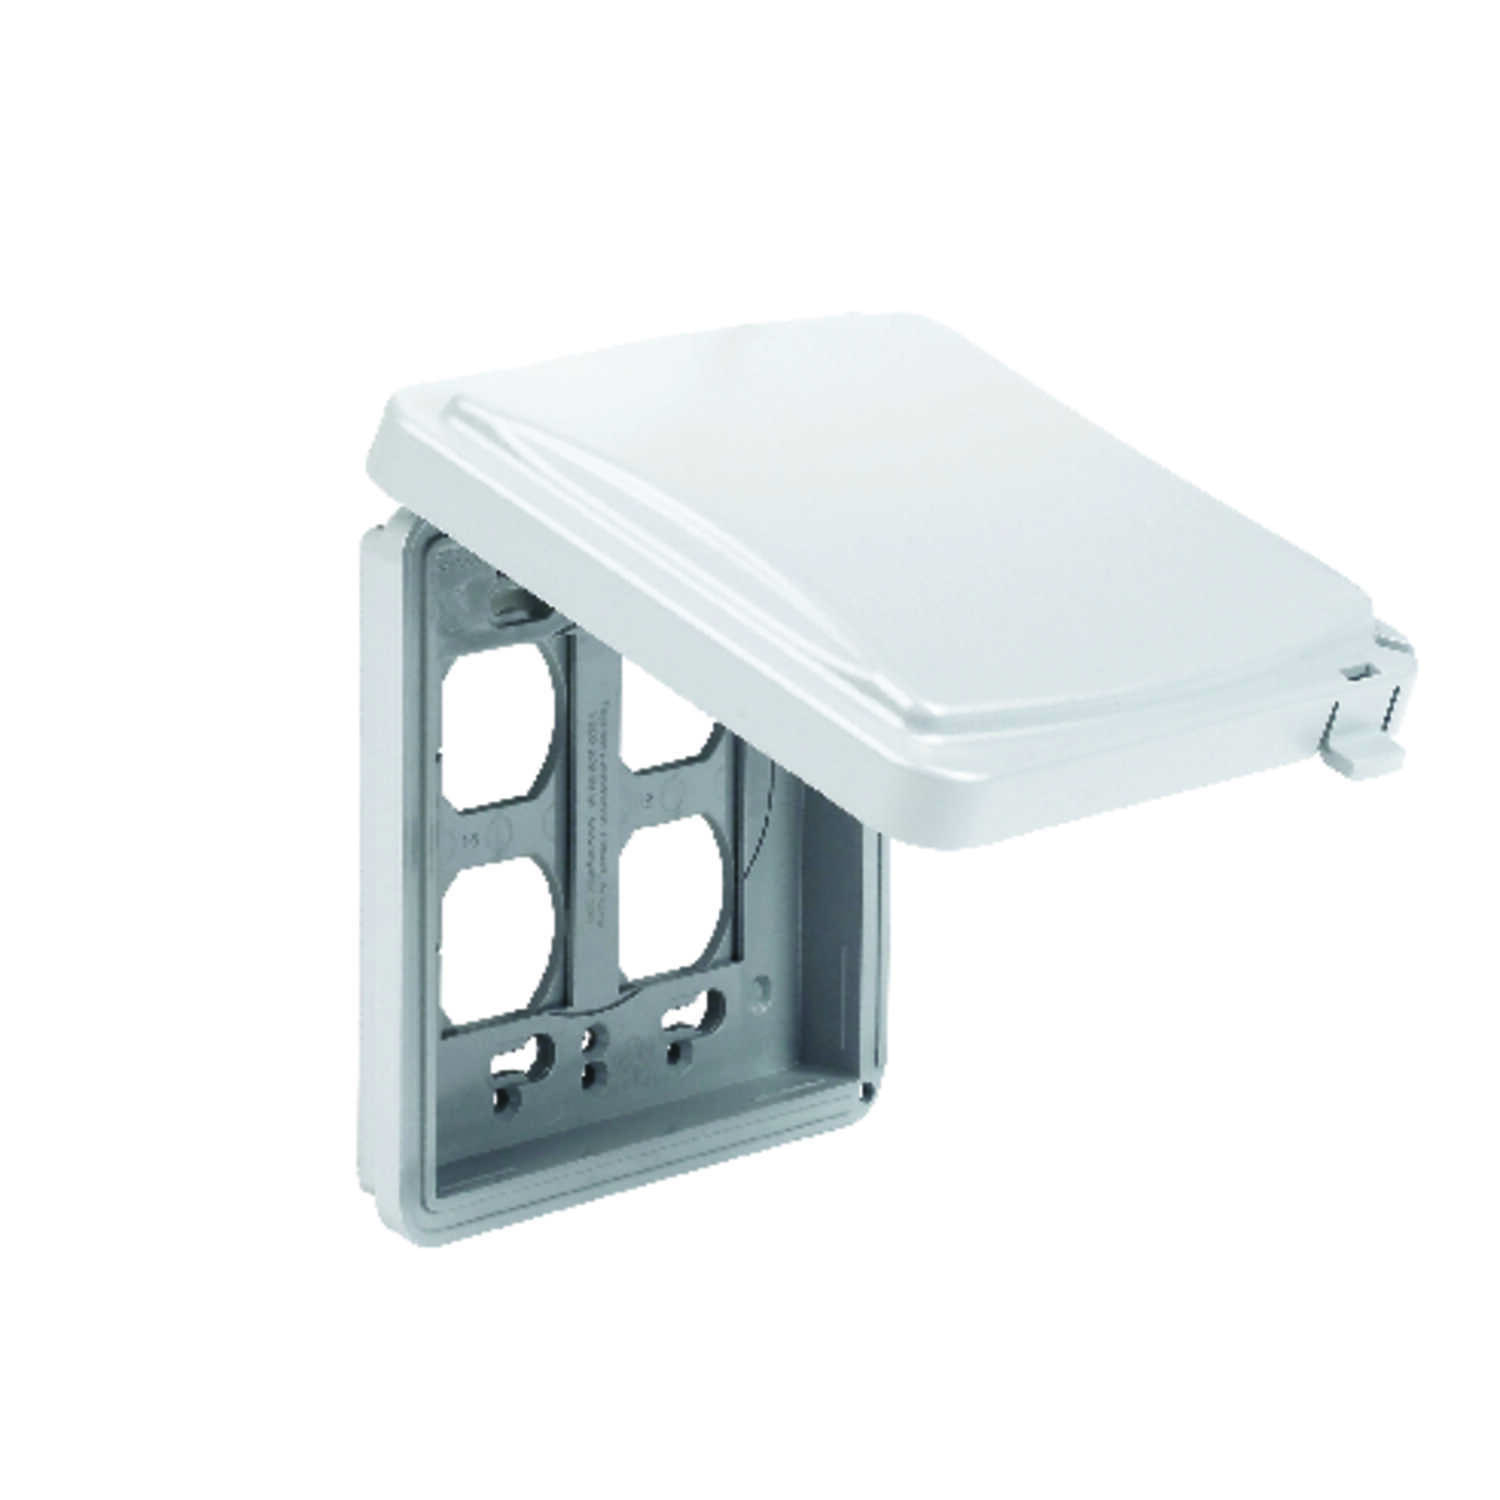 TayMac  Rectangle  Plastic  2 gang Receptacle Box Cover  For Protection from Weather